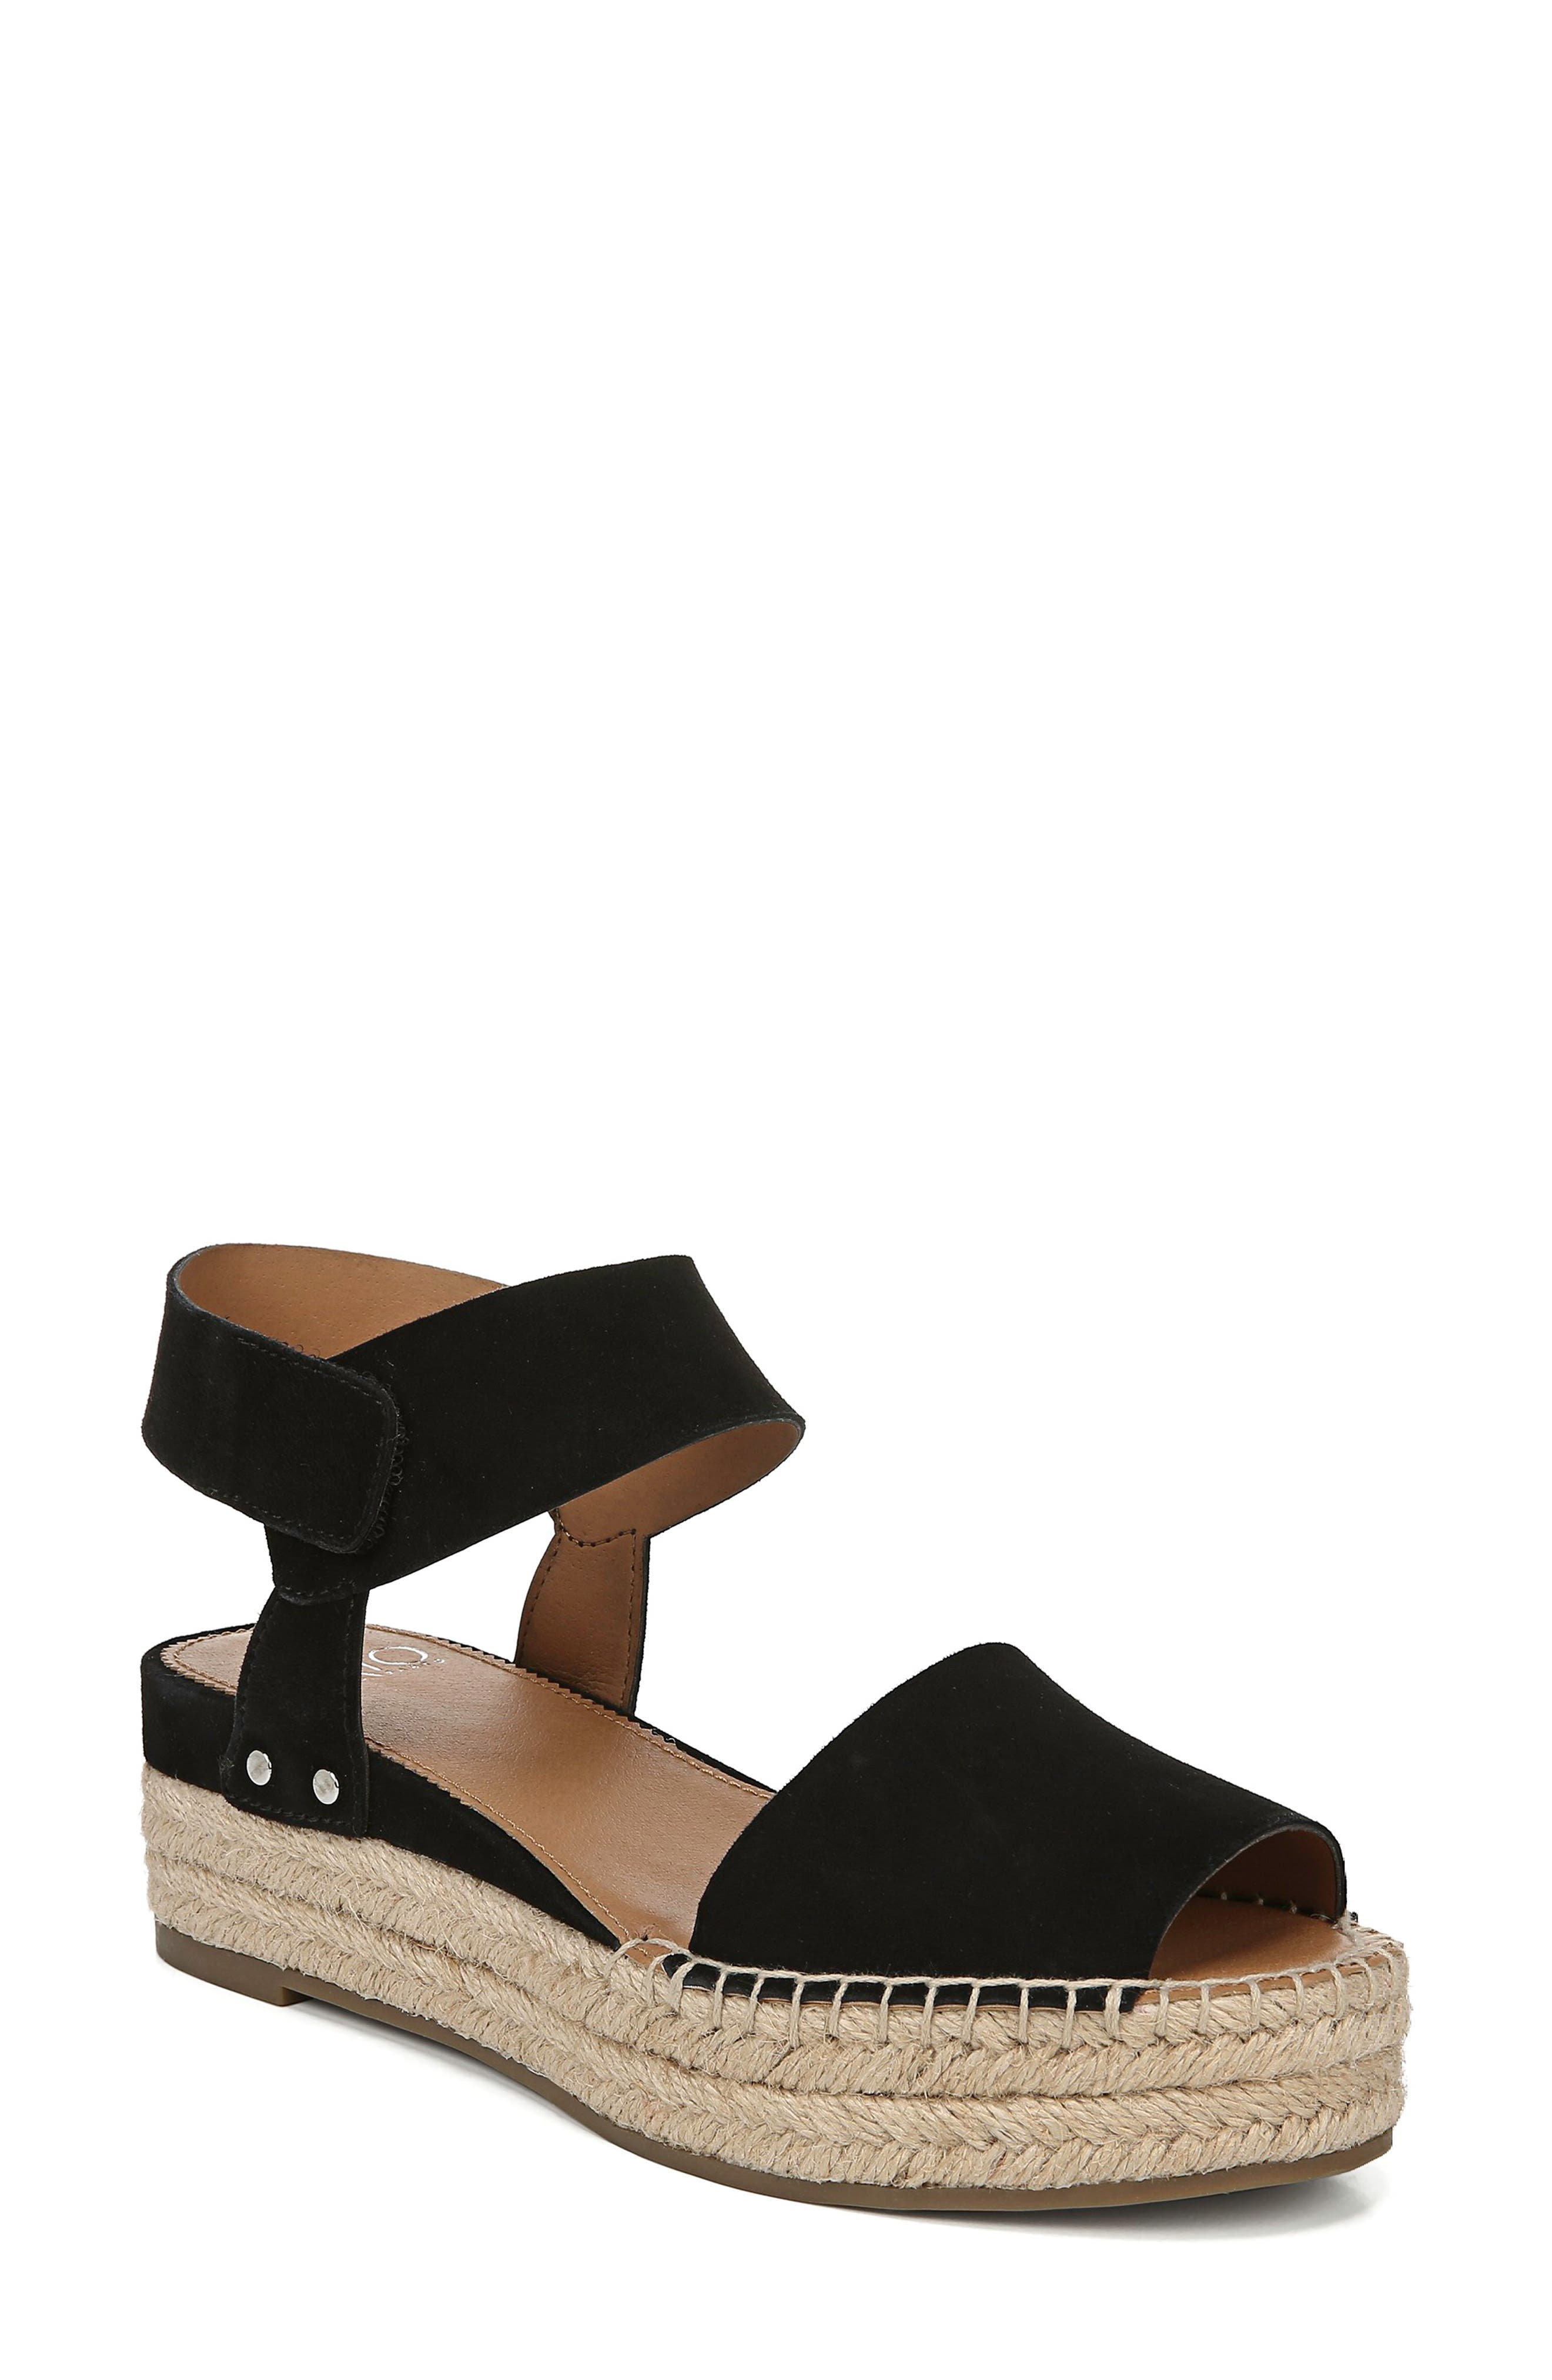 37e323a3aa2 sarto by franco sarto espadrilles sandals for women - Buy best ...